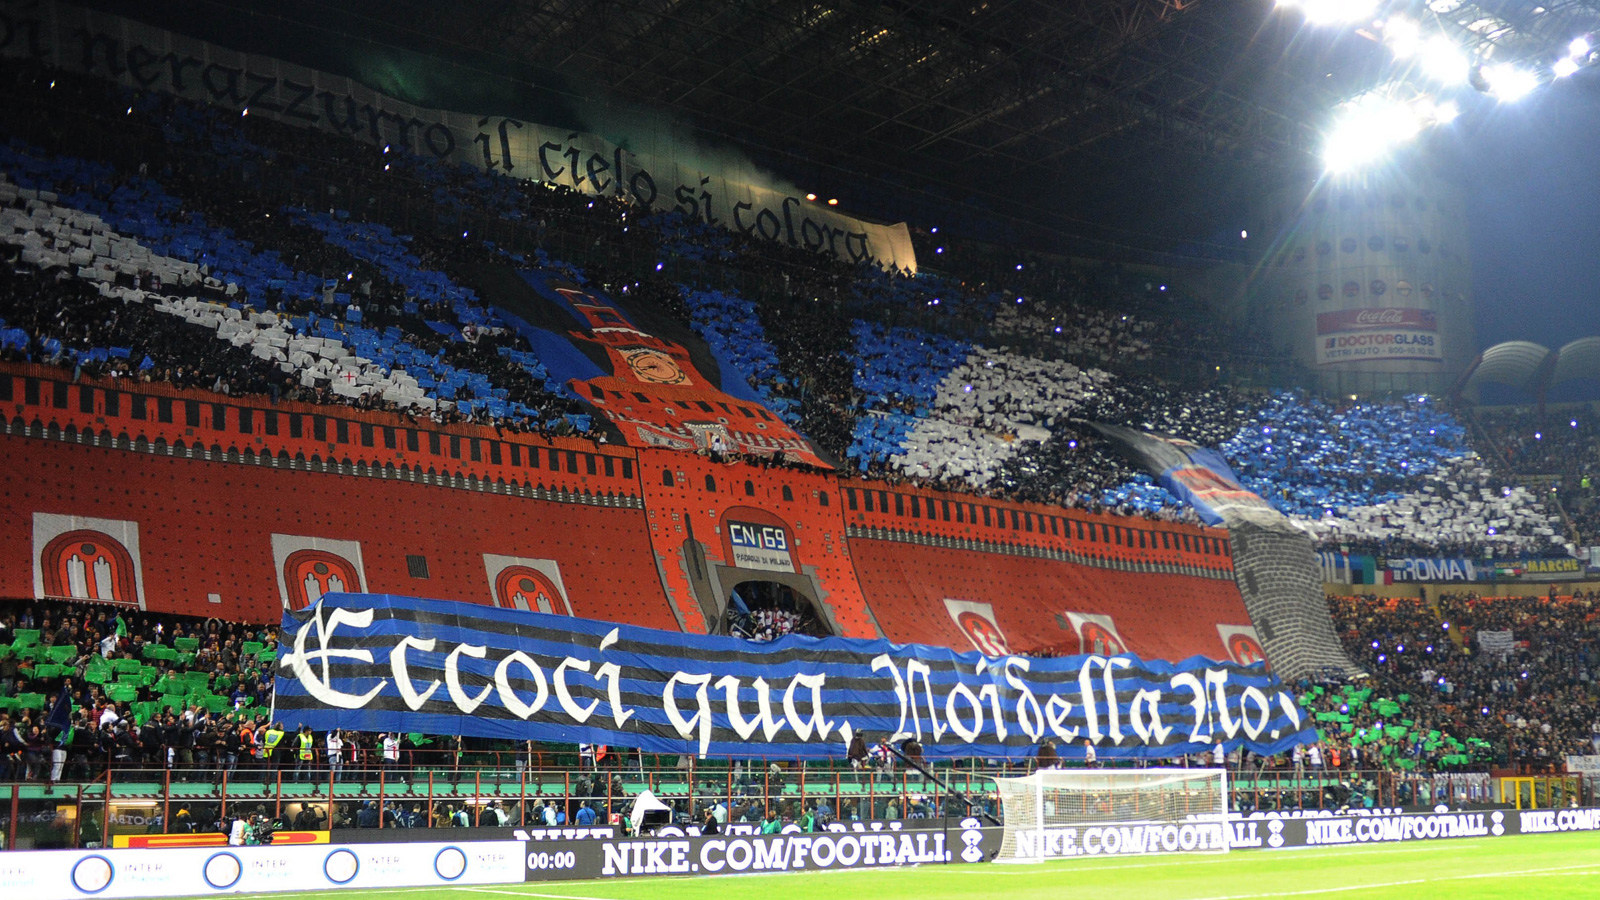 Inter Milan's Curva Nord announces its presence ahead of the Derby della Madonnina–the annual clashes between city rivals Inter and AC Milan.